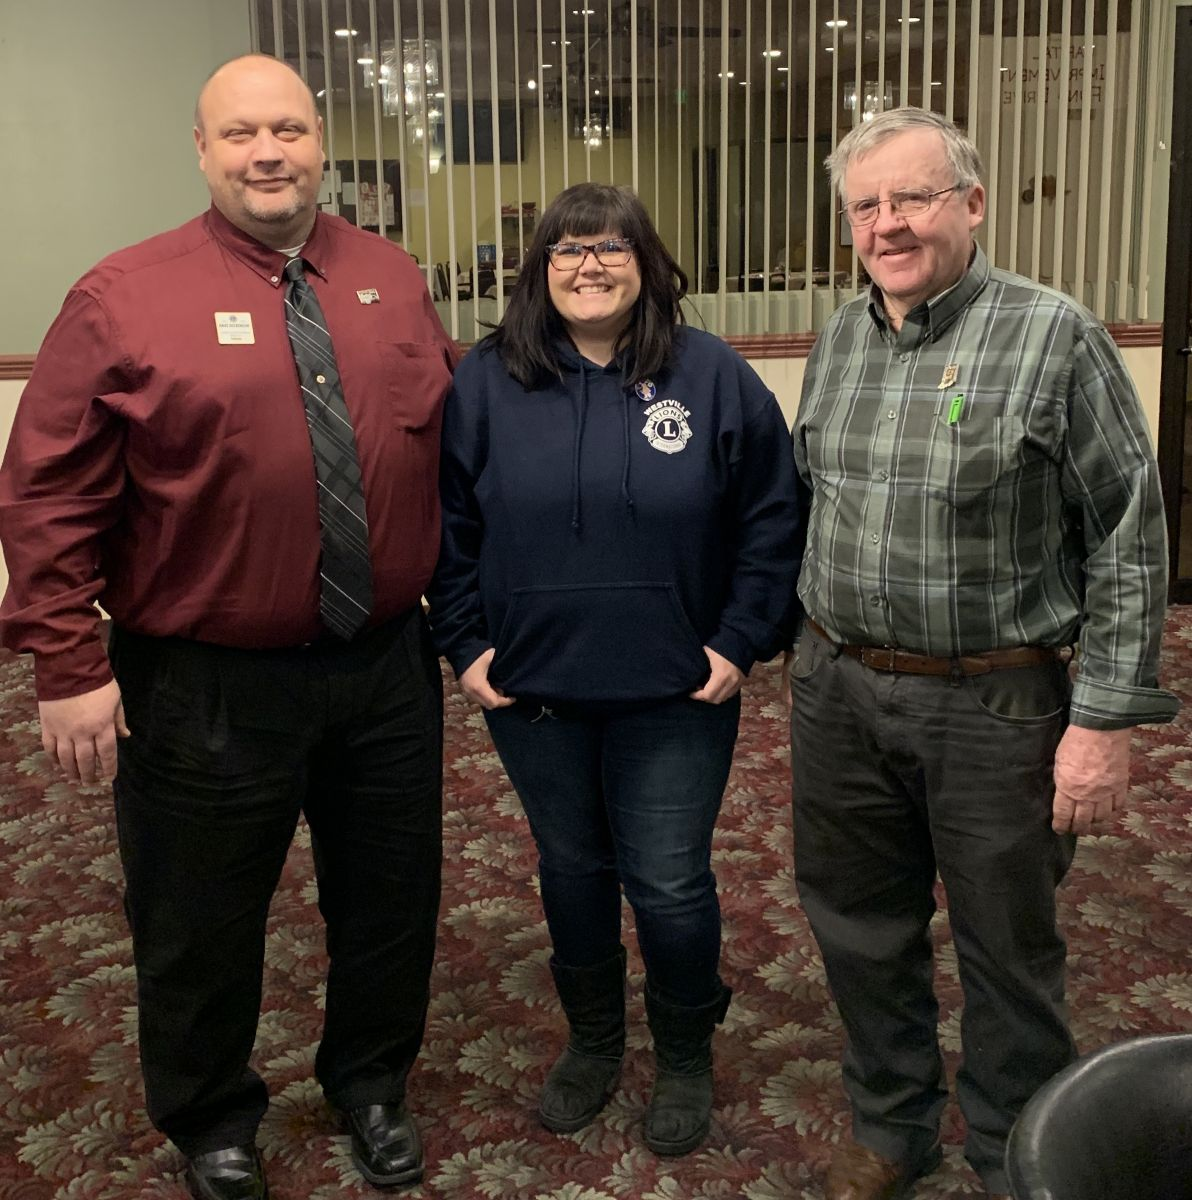 2nd VDG Dave Dickinson, President Whitney Martin, and Lion Butch Weston at 2020 Cabinet Meeting.